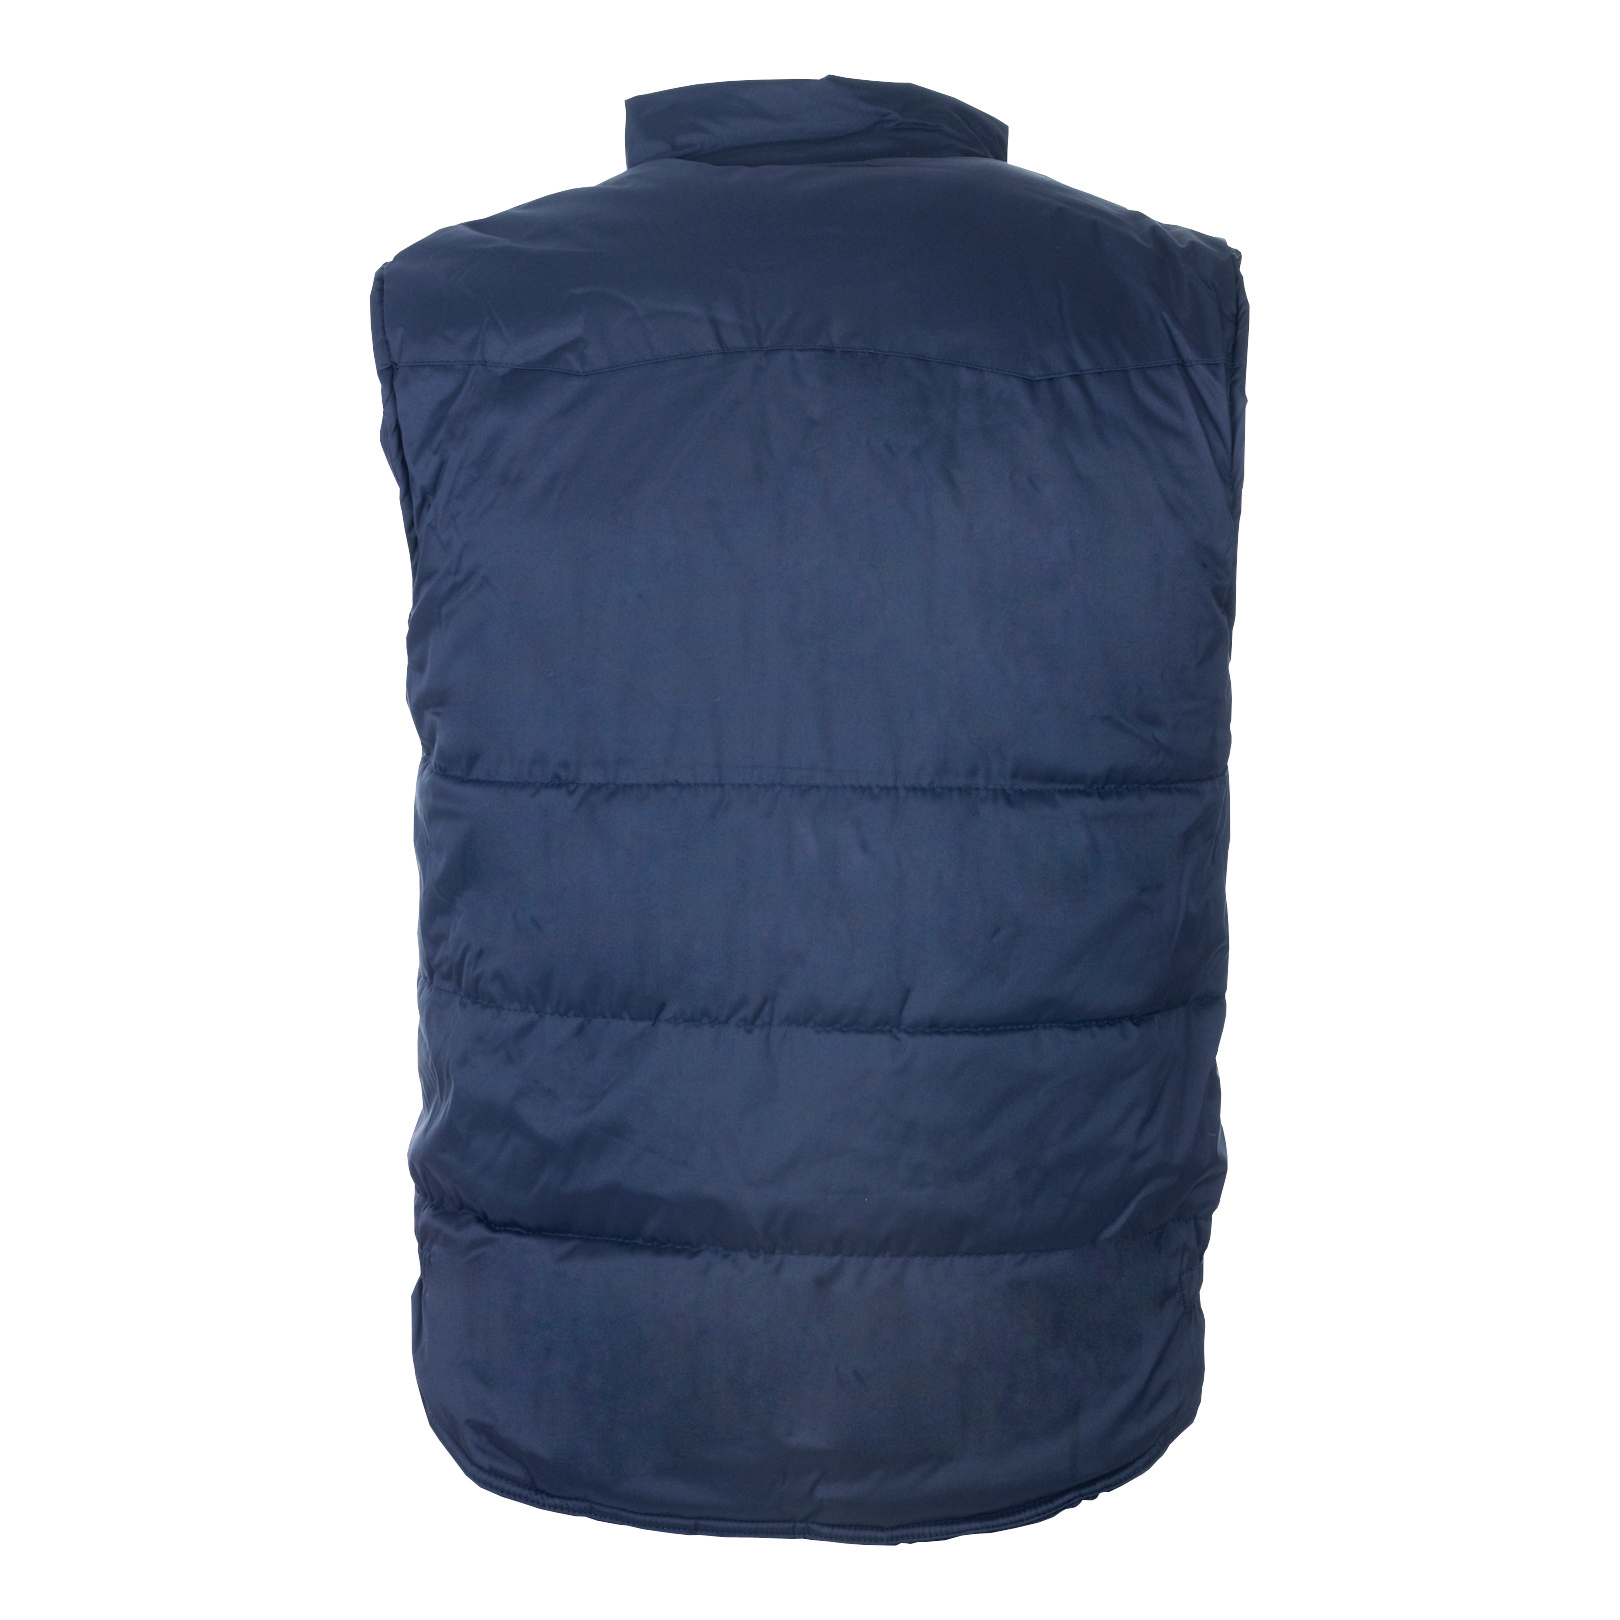 Body Warmer Polyester with Padding & Multi Pockets Large Navy Ref HBNL *Approx 3 Day Leadtime*